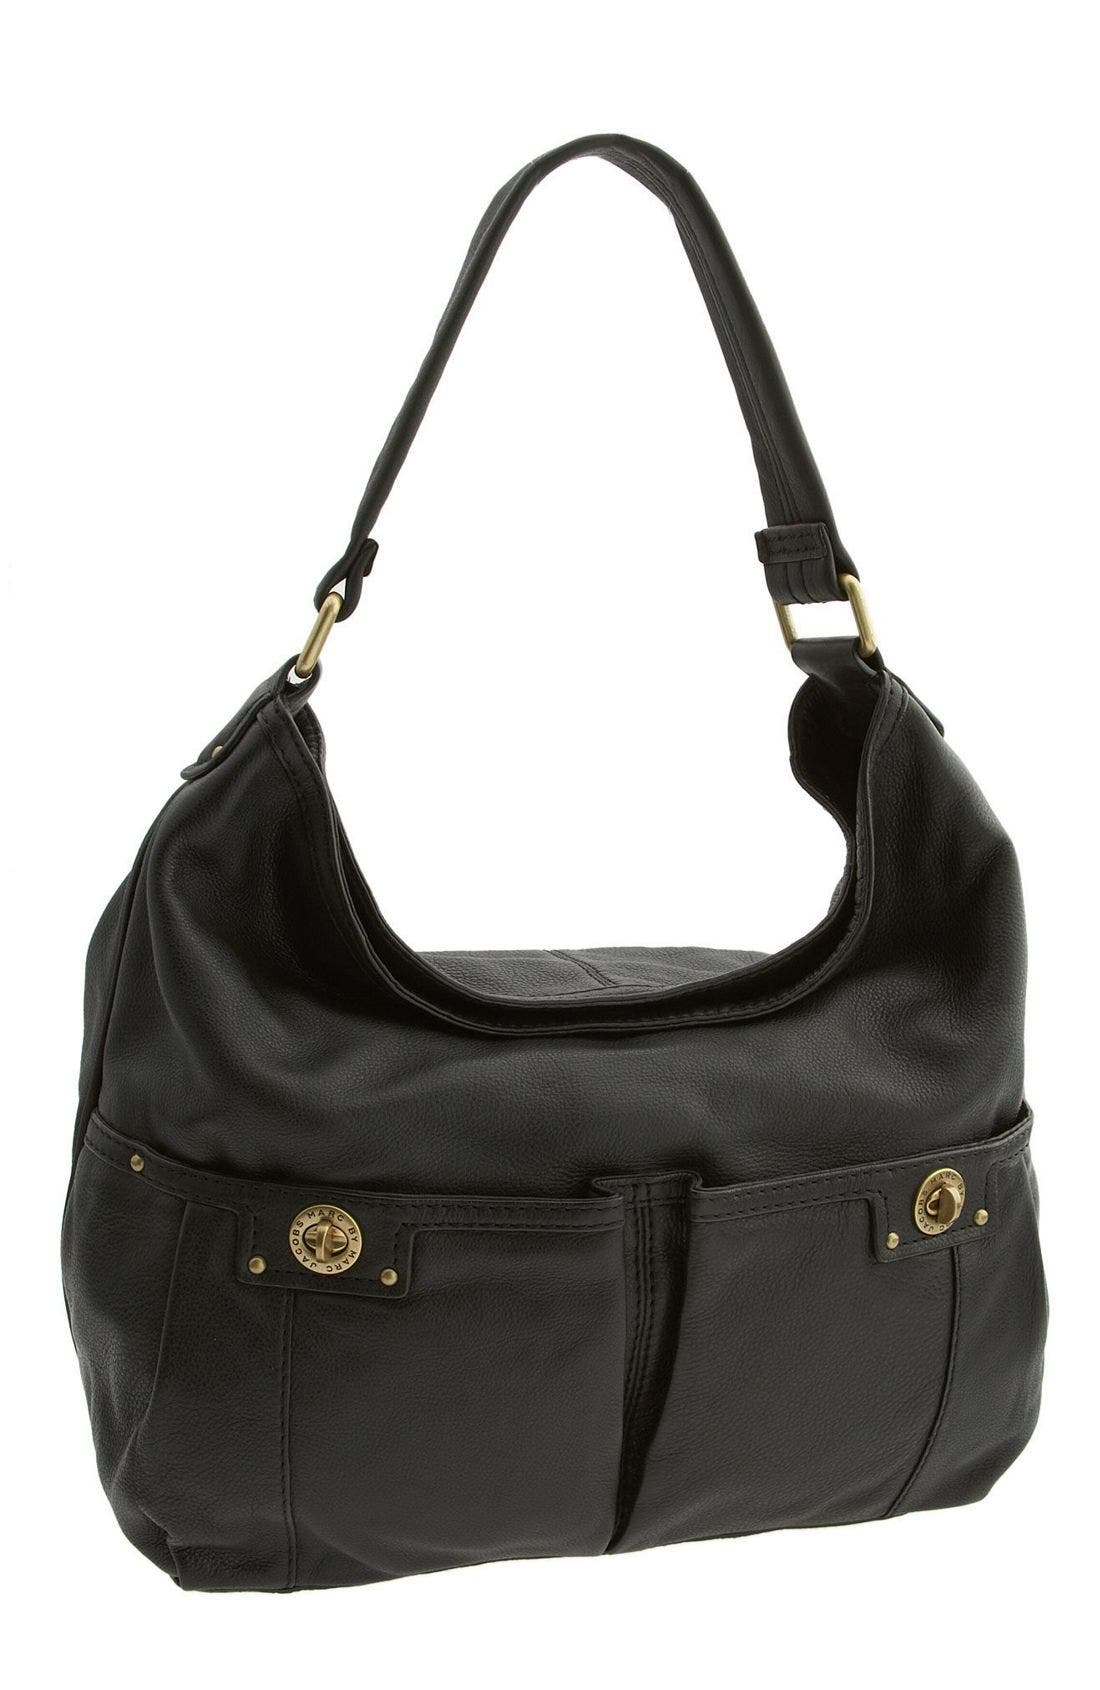 MARC BY MARC JACOBS 'Totally Turnlock - Faridah' Hobo Bag,                             Main thumbnail 1, color,                             001